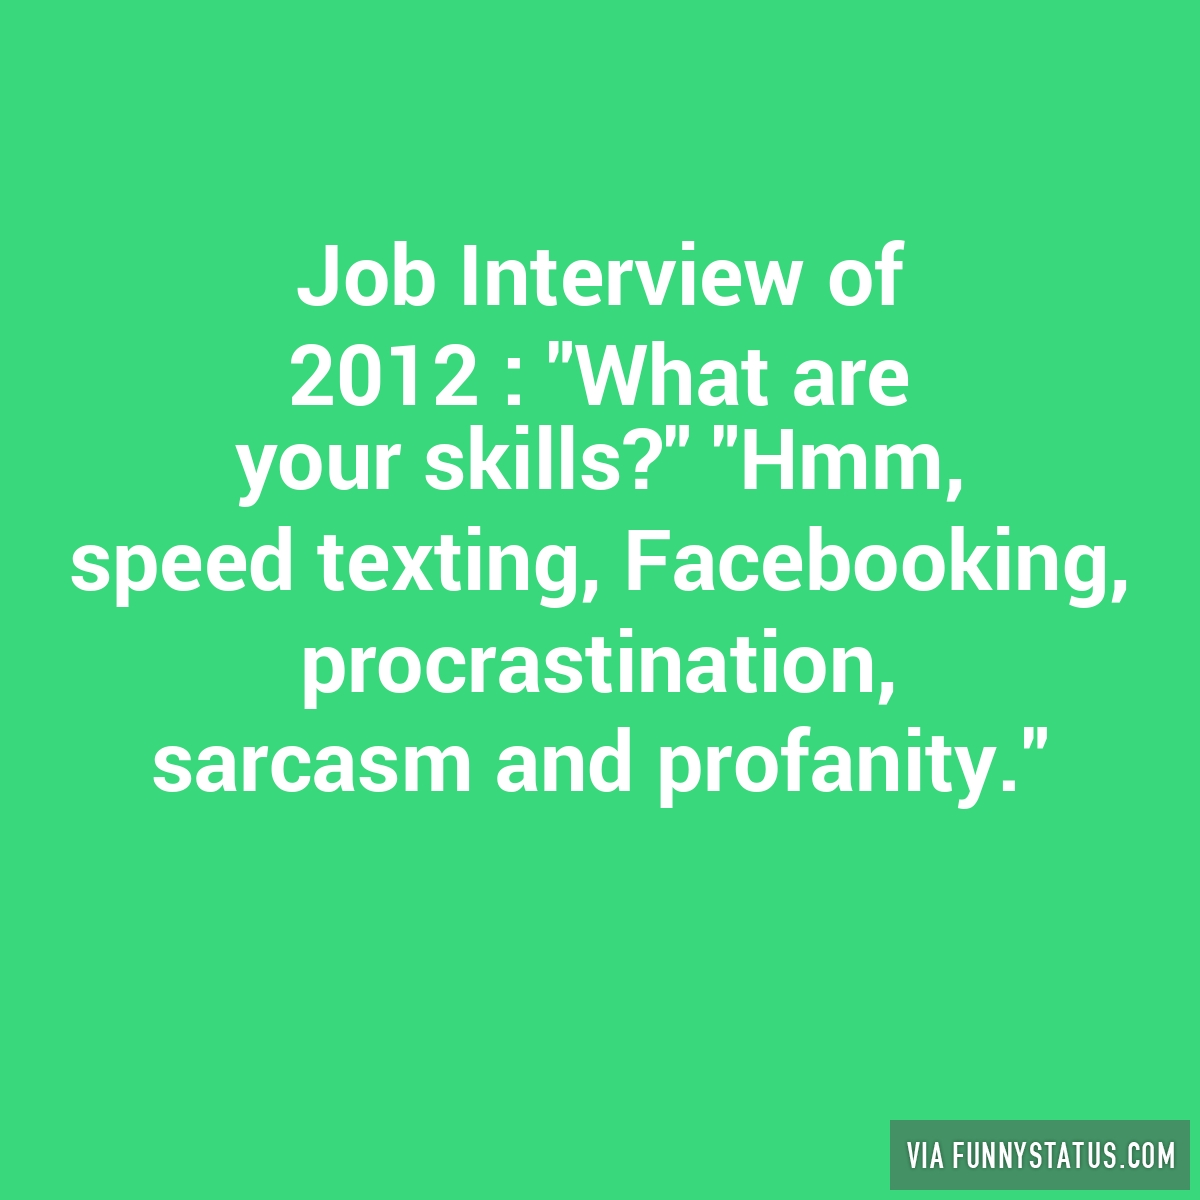 job interview of 2012 what are your skills hmm funny status